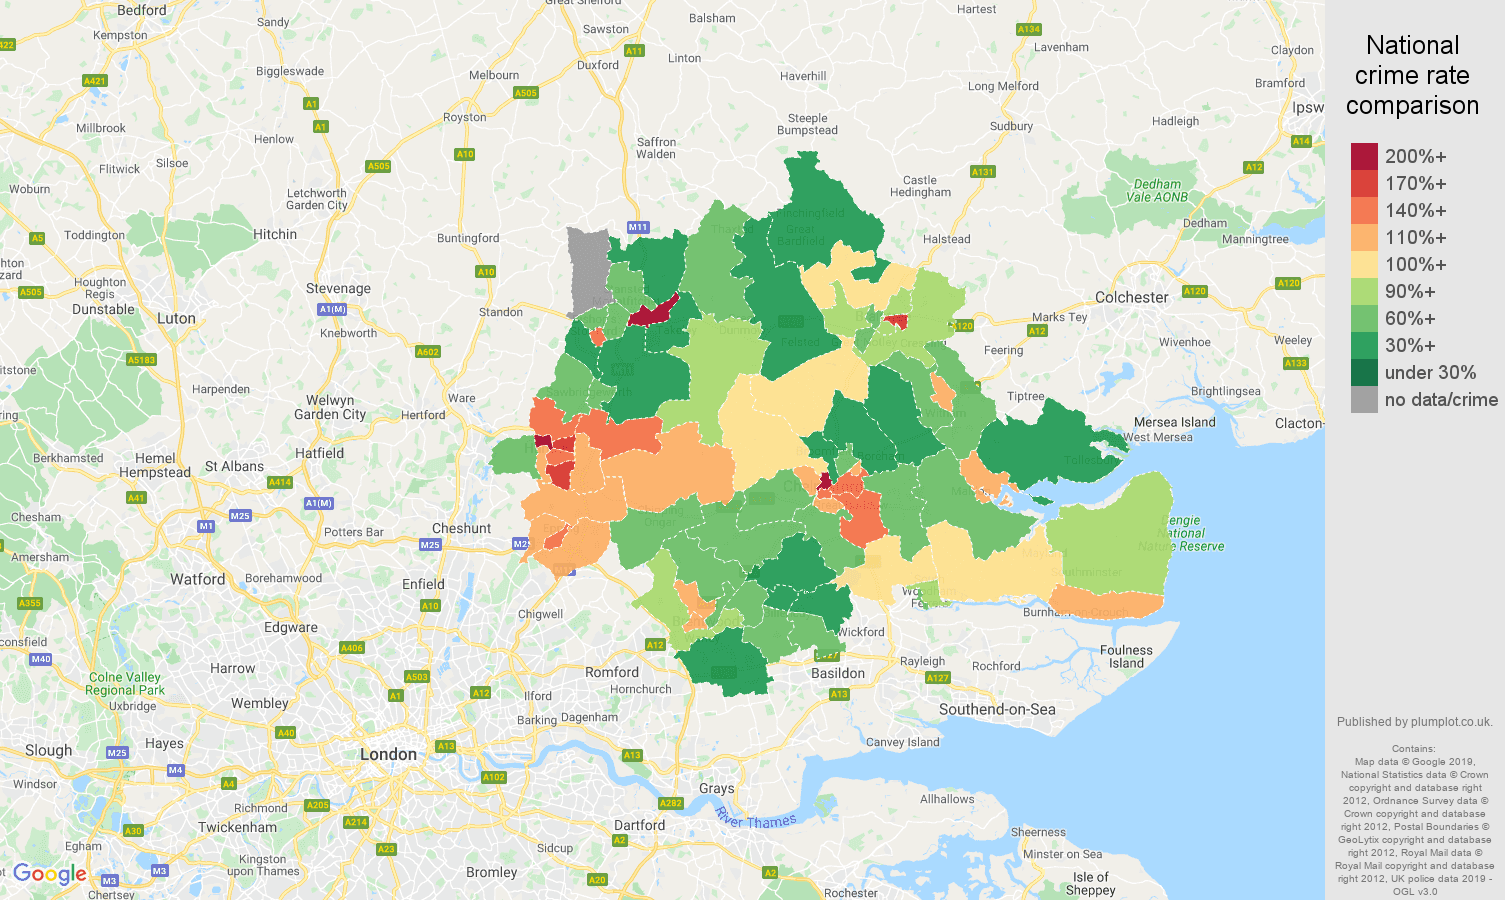 Chelmsford public order crime rate comparison map